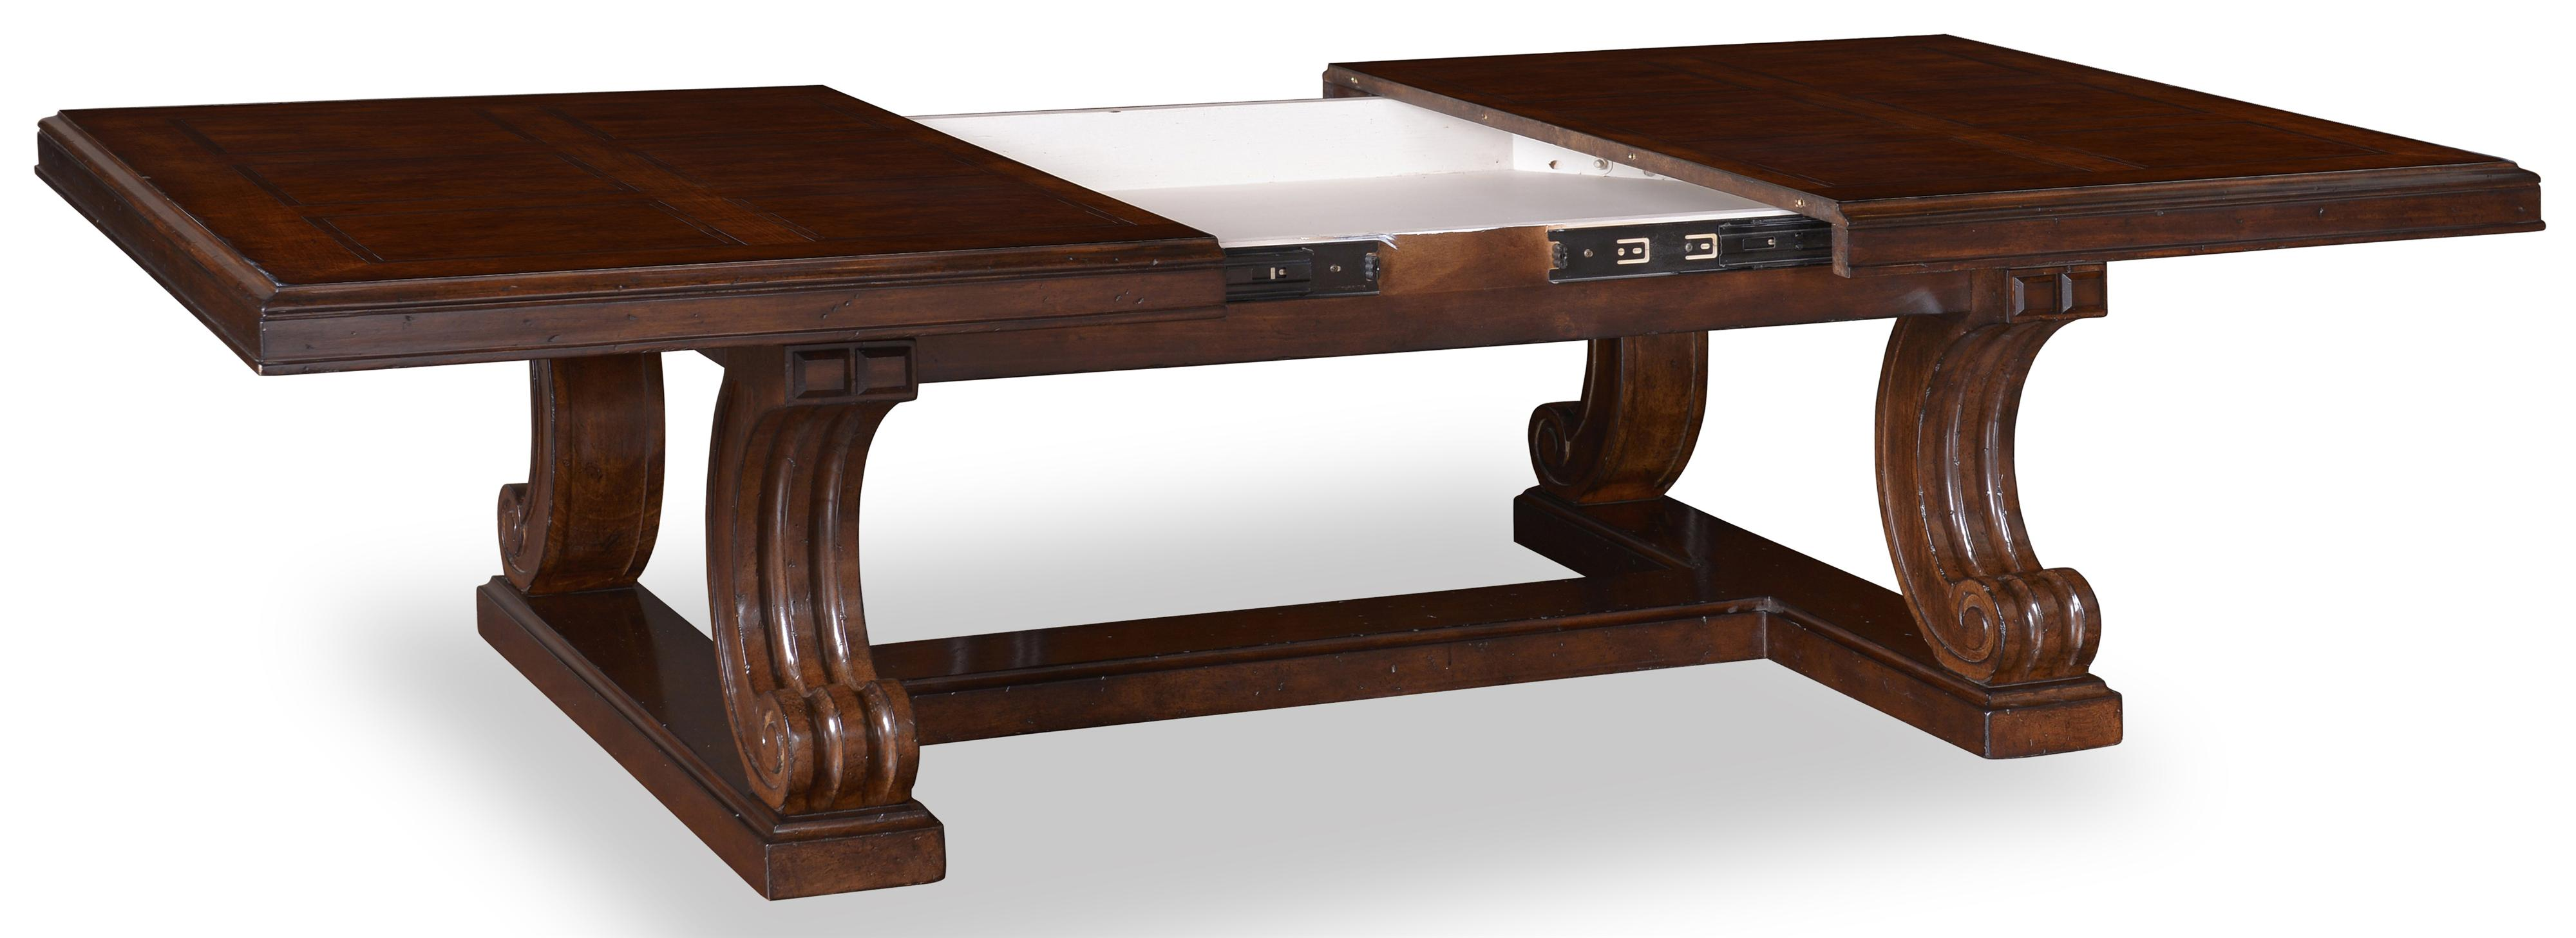 Traditional Rectangular Cocktail Table with Sliding Top & Leaf by